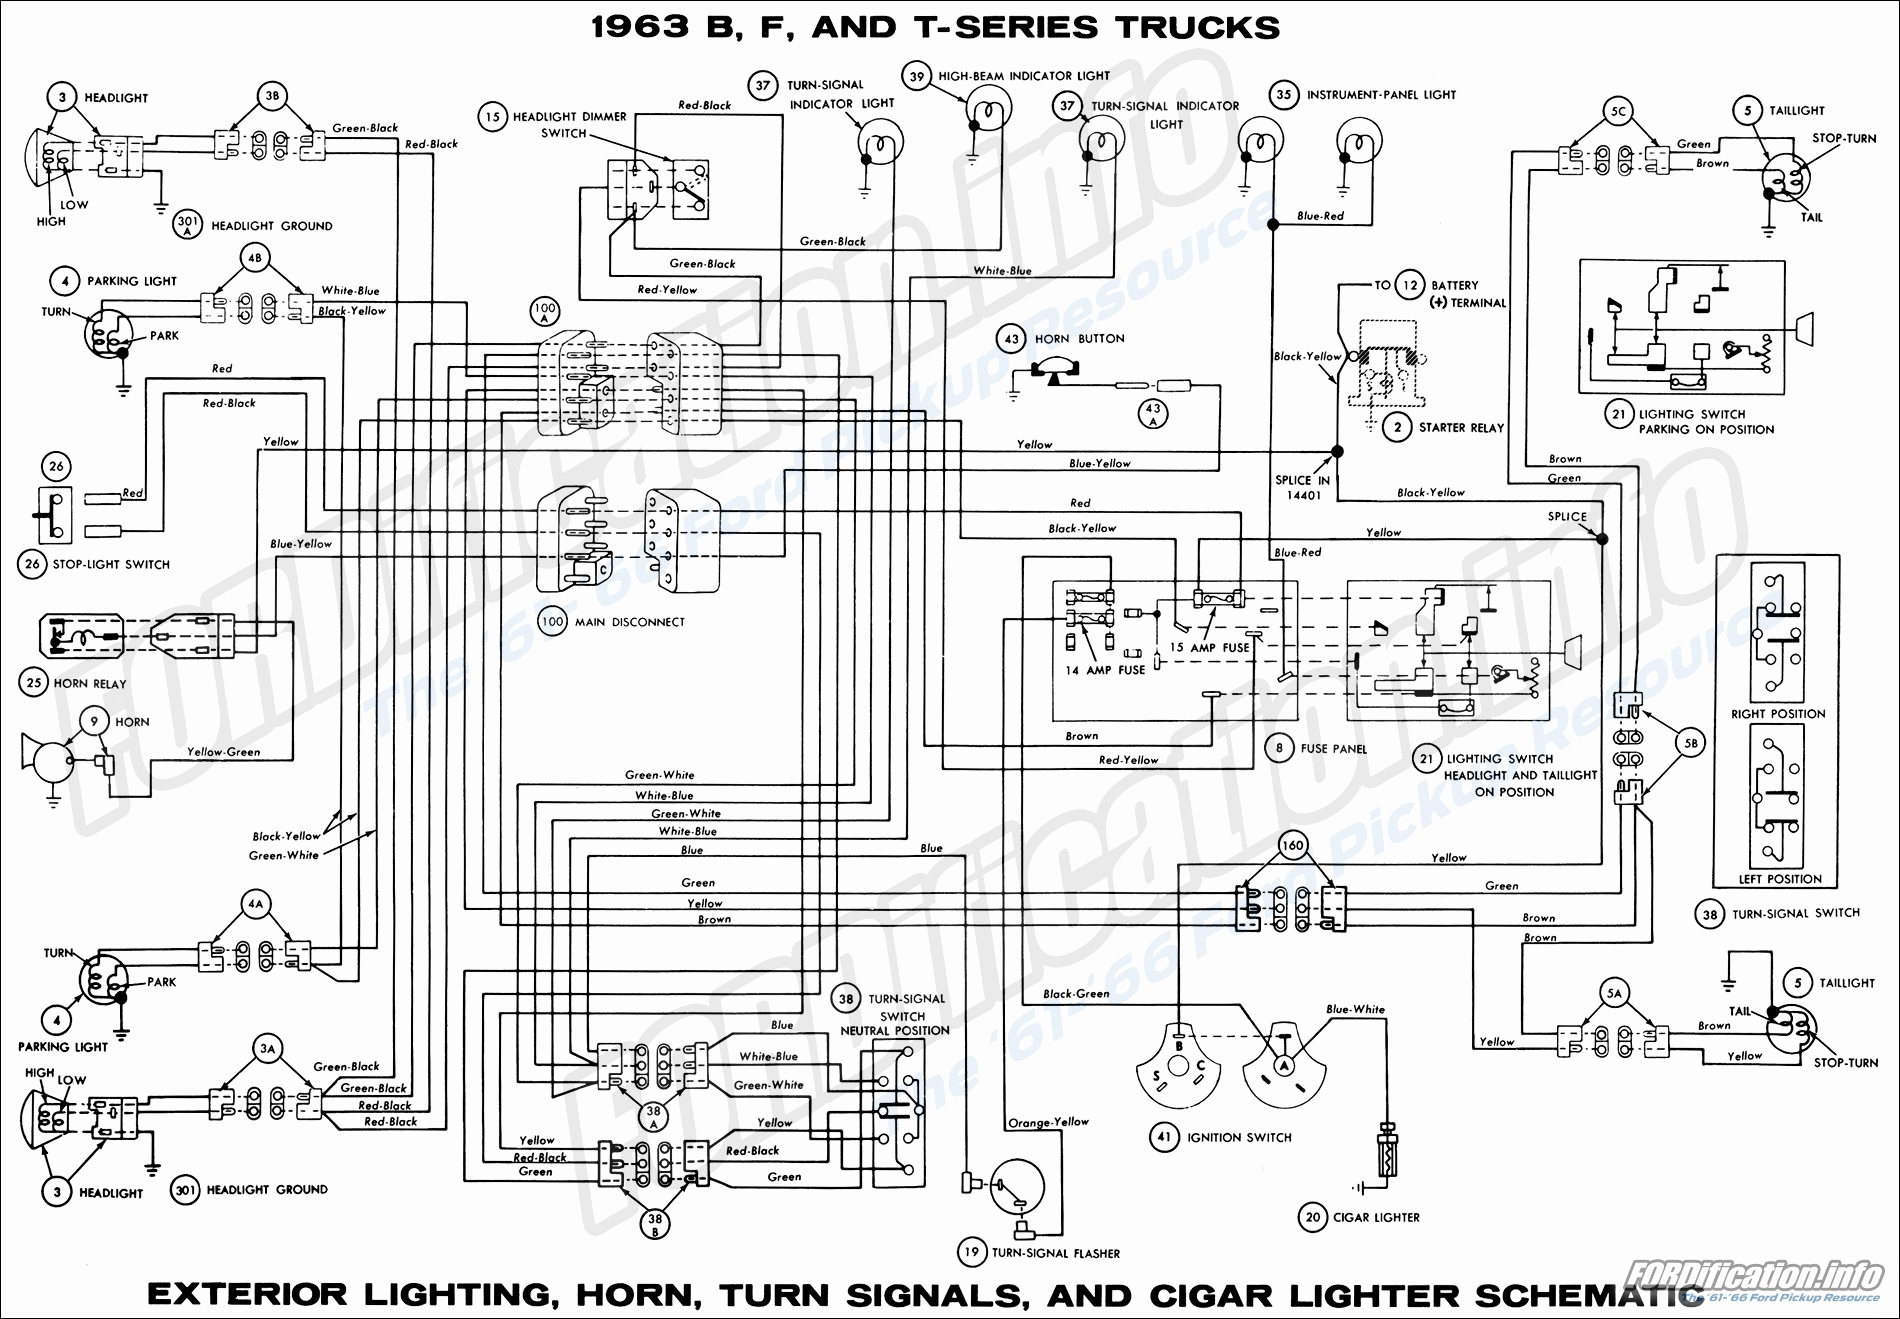 Speed Tech Lights Wiring Diagram | Wiring Diagram - Speed Tech Lights Wiring Diagram